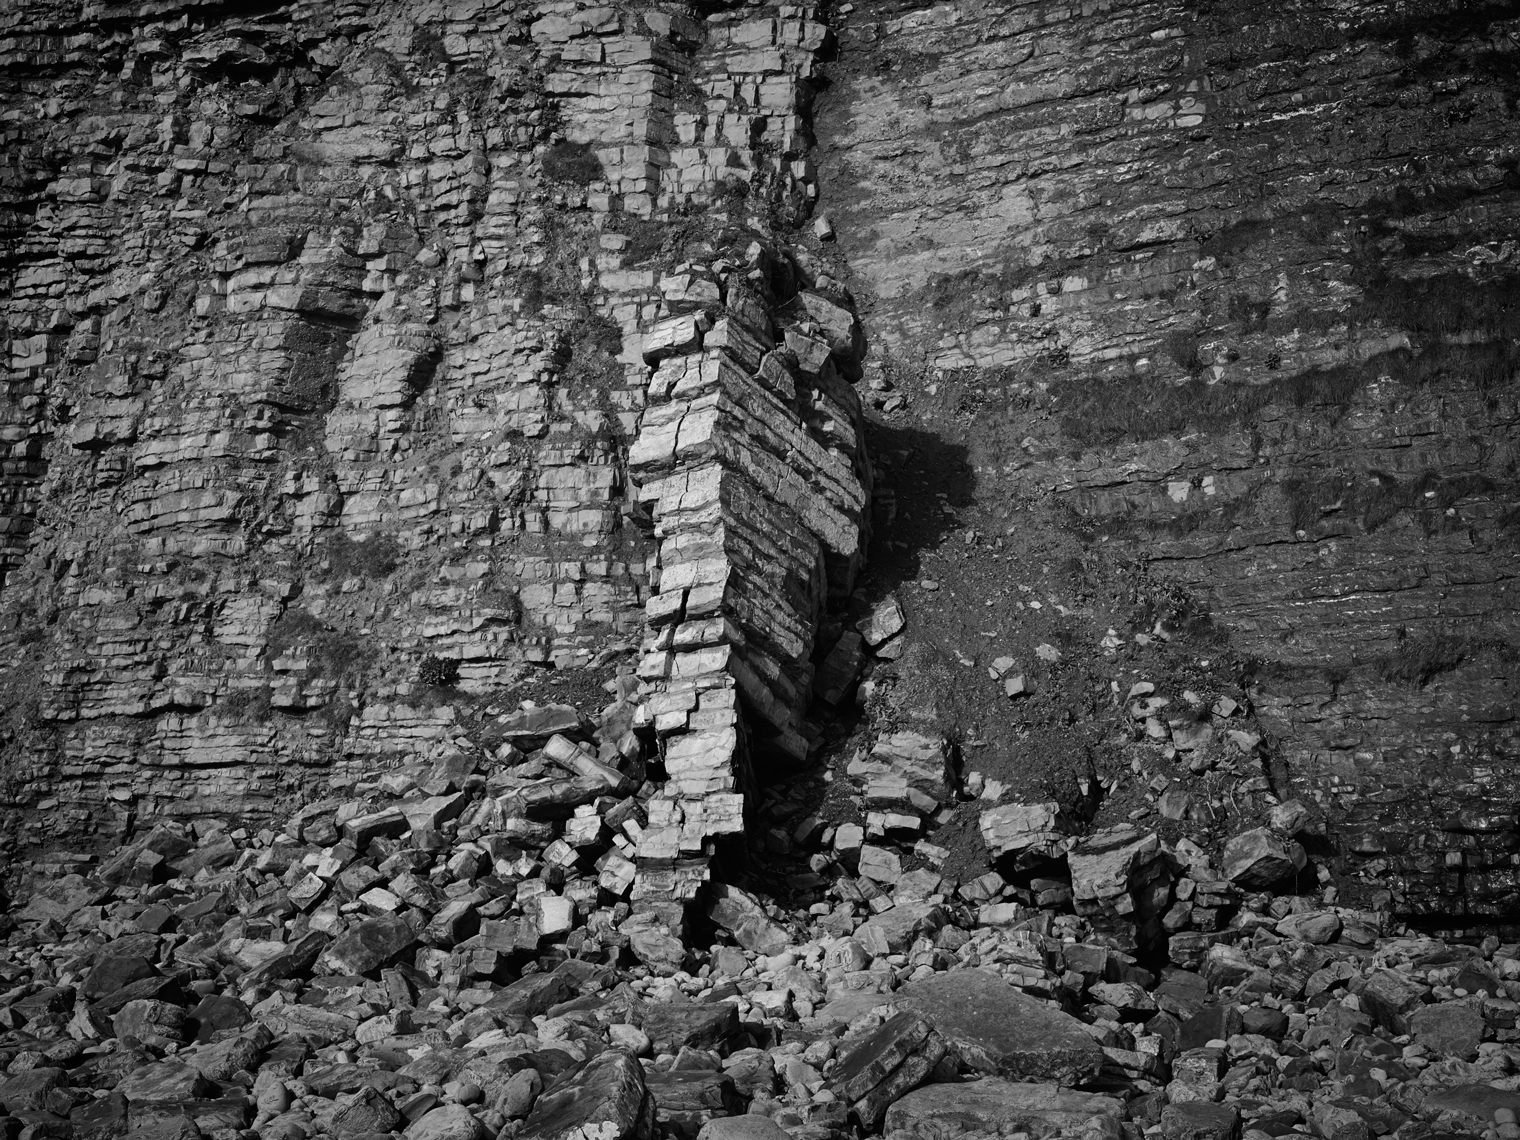 Jon Wyatt Photography - Landslide in  Llantwit Major, South Wales